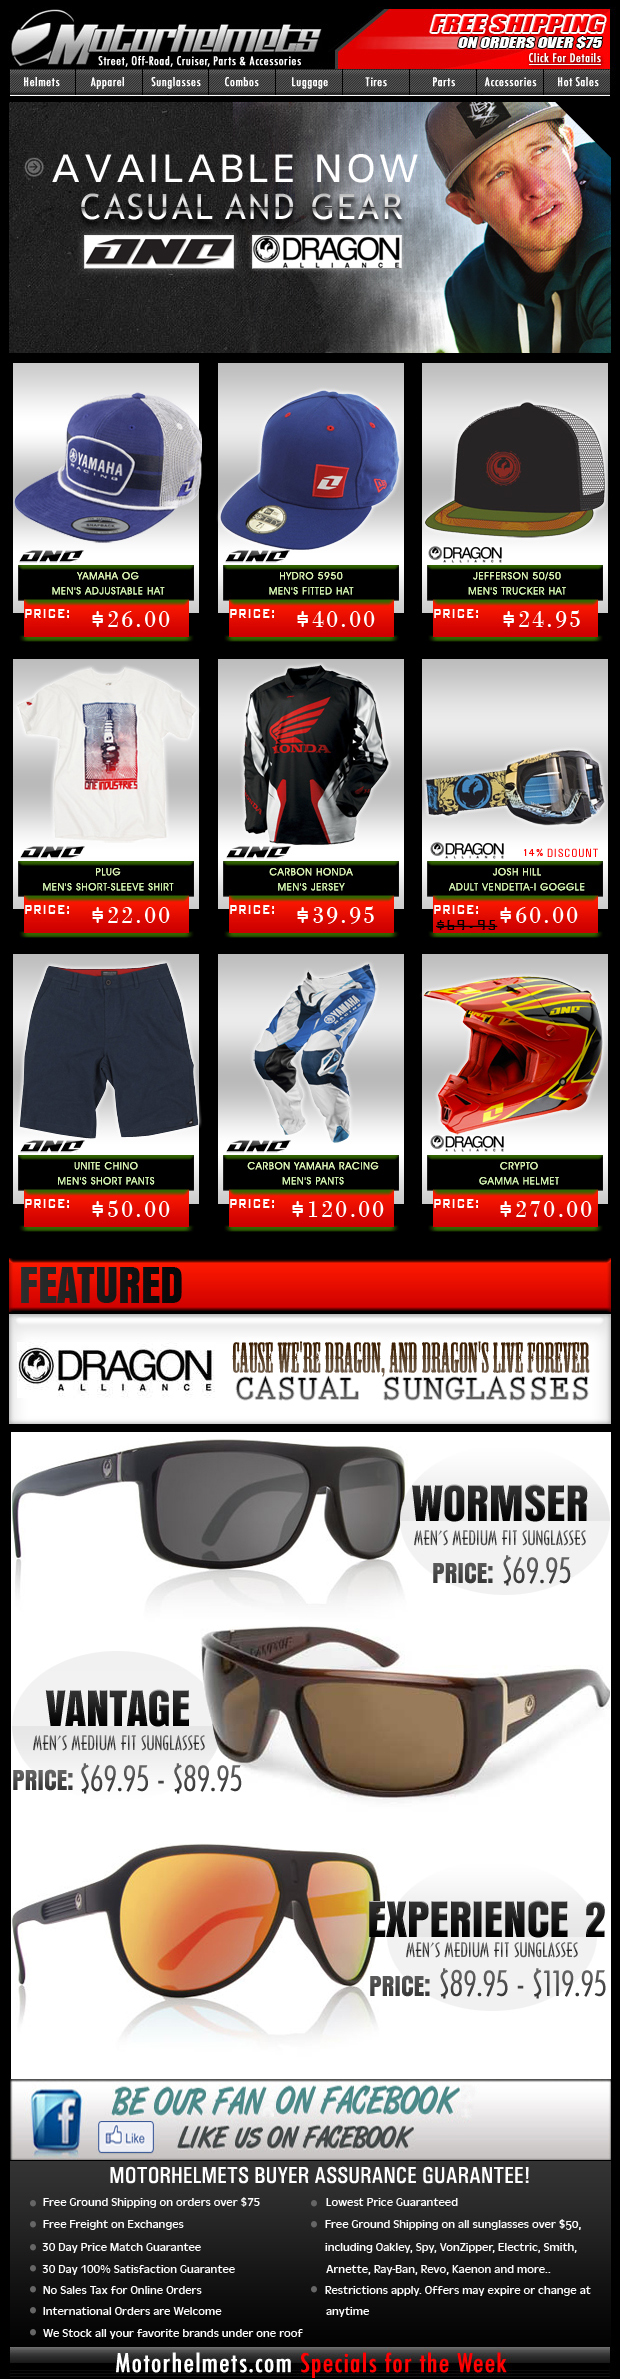 Post V-Day Shopping? Try these Premium Items from One and Dragon...